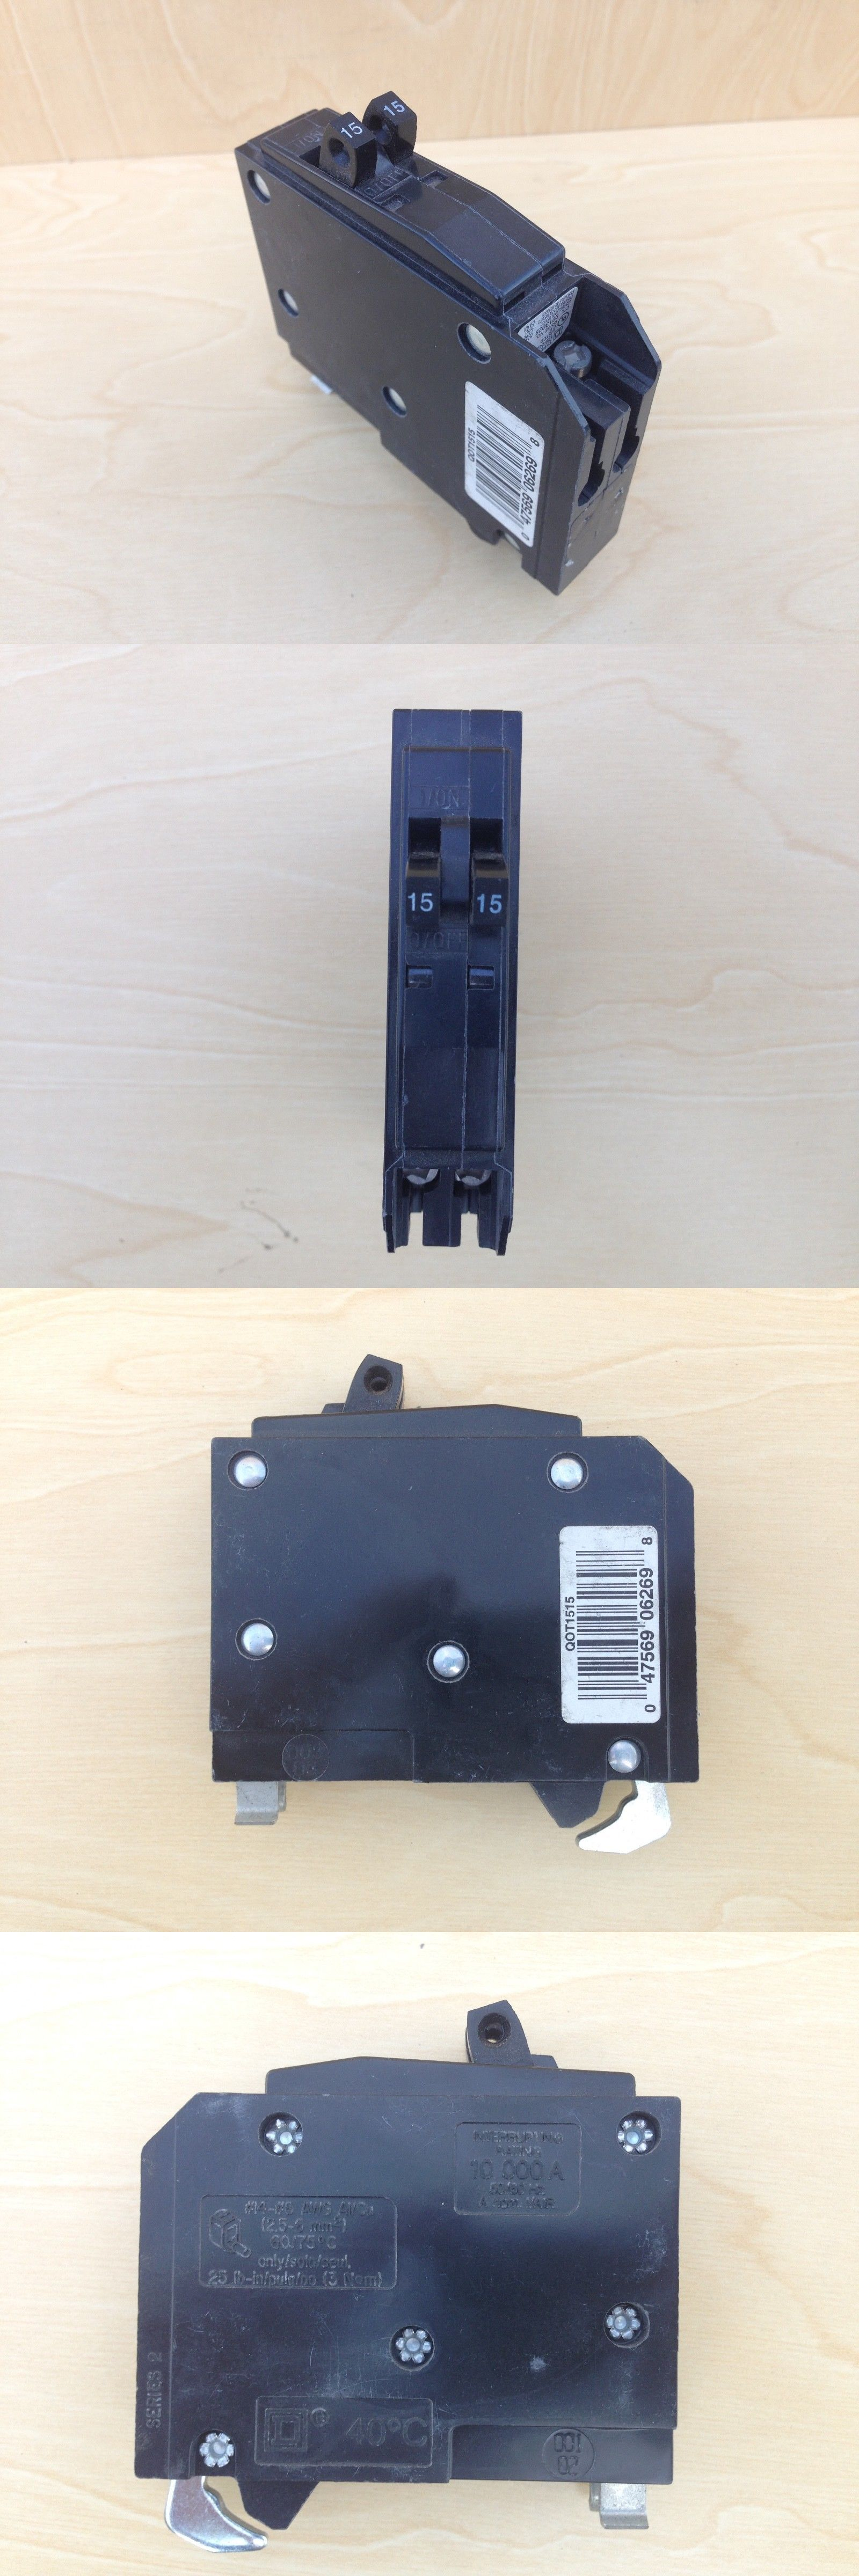 small resolution of circuit breakers and fuse boxes 20596 square d qot1515 qo 2 15 amp single pole tandem circuit breaker new buy it now only 11 49 on ebay circuit